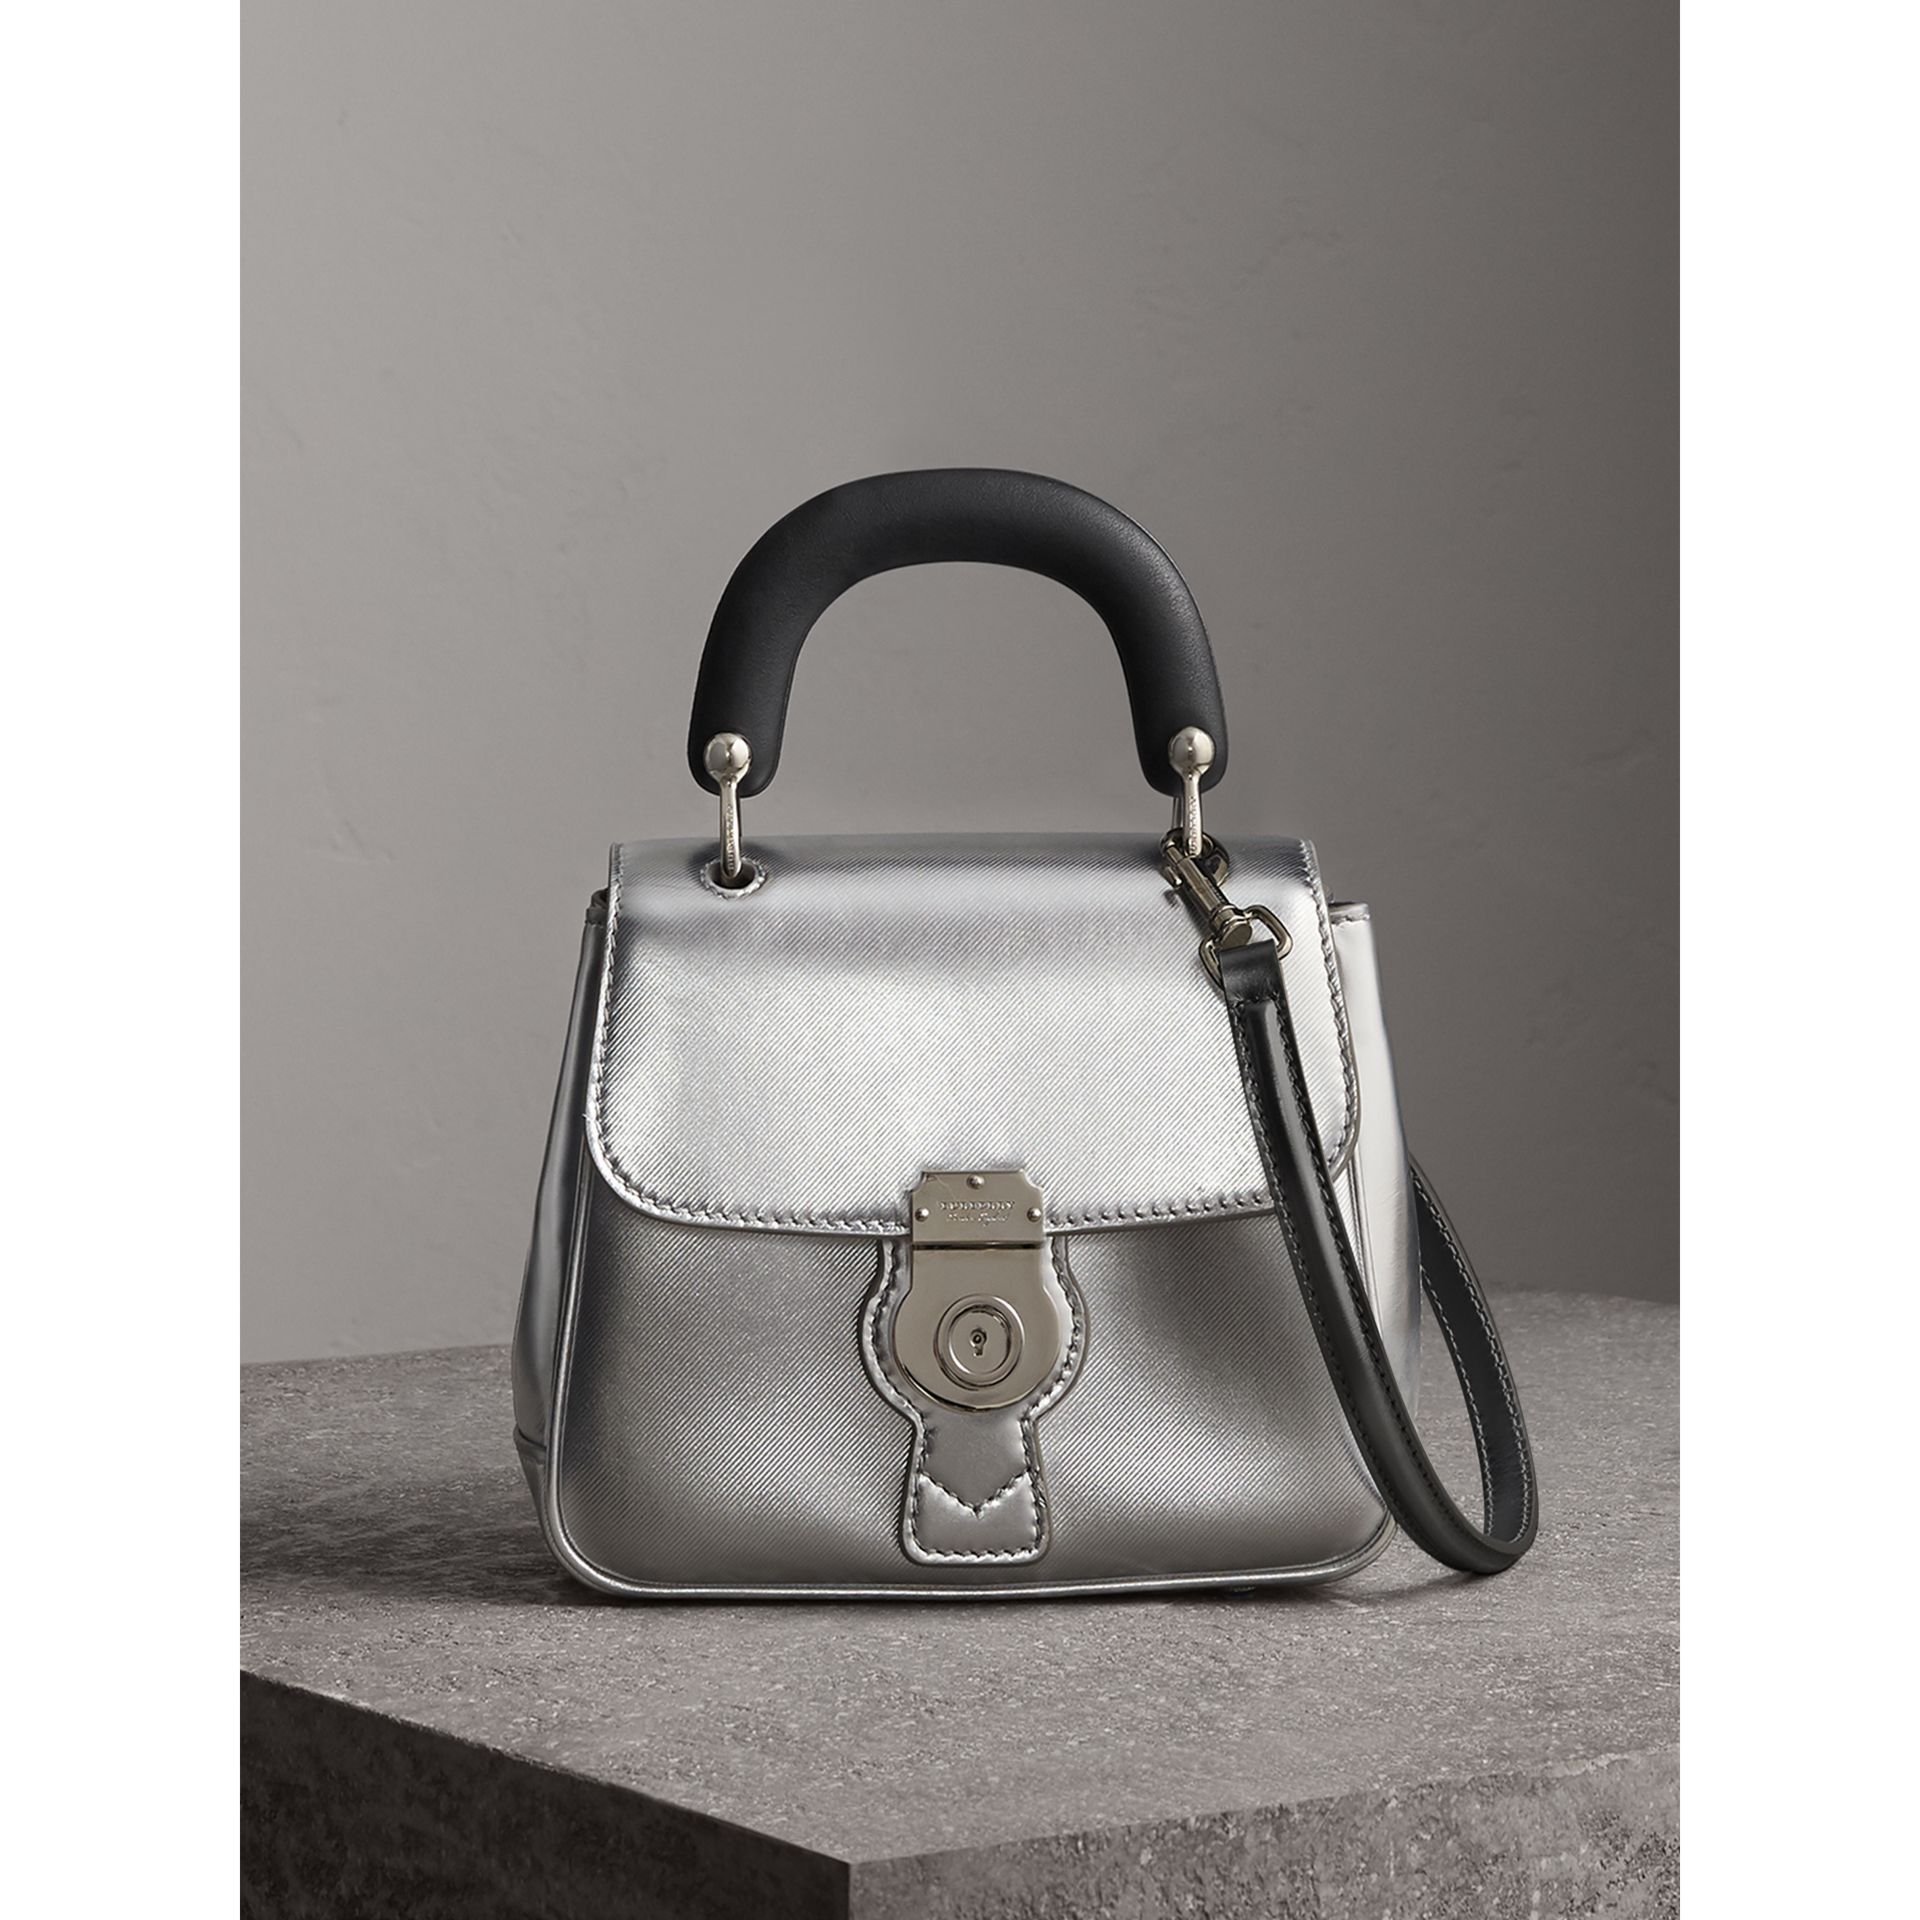 Burberry The Small Dk88 Top Handle Bag In Metallic Leather Silver